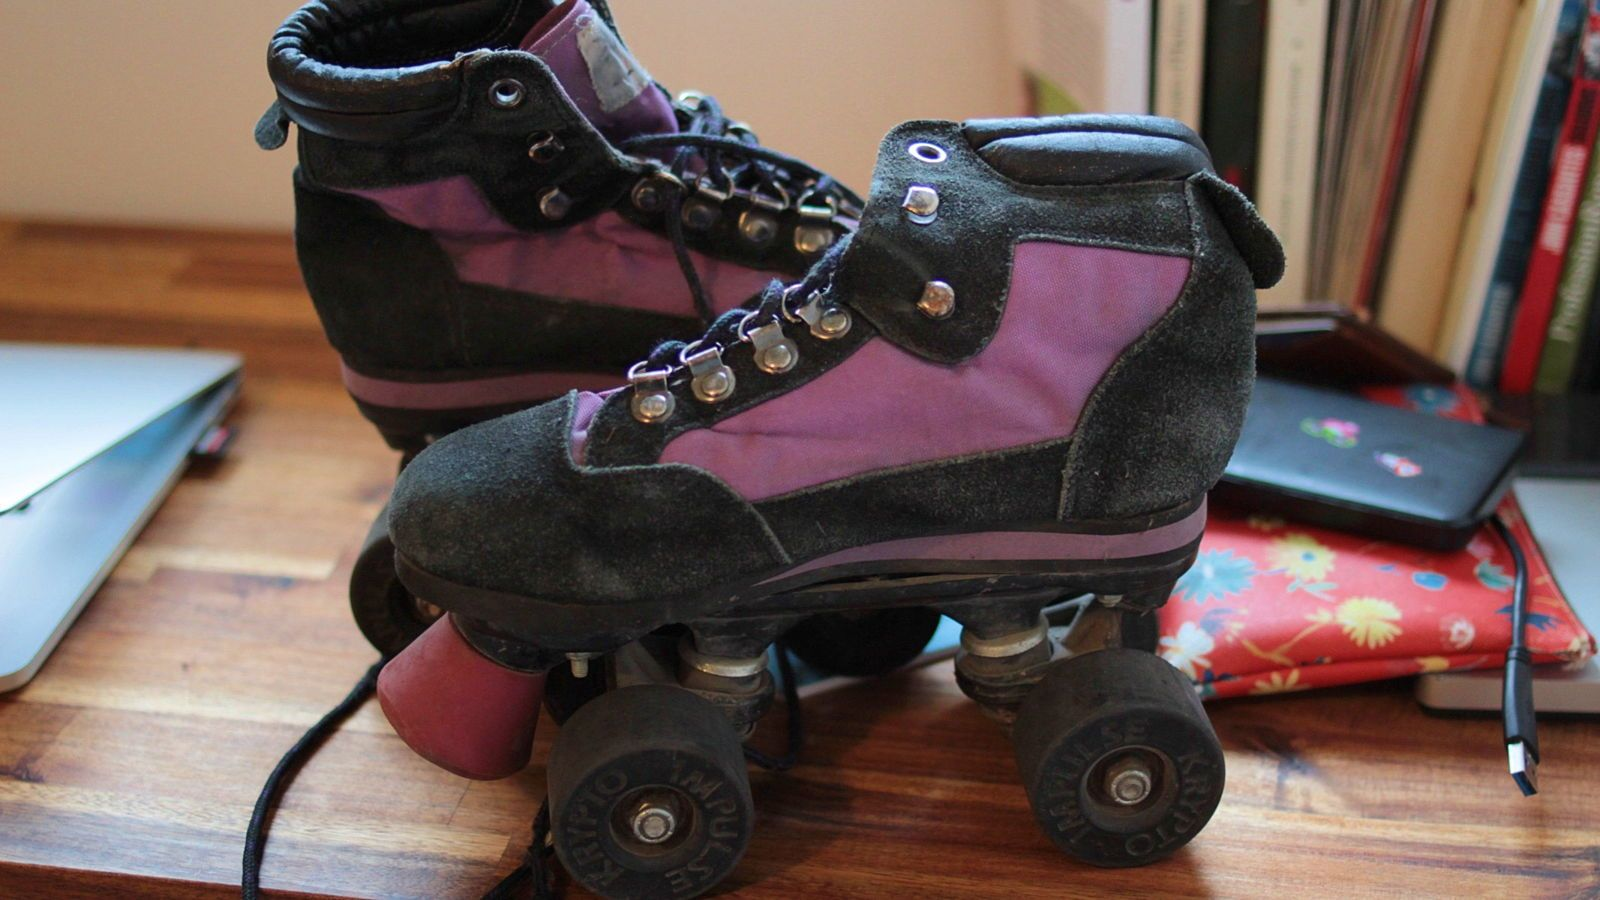 Patins à roulettes / roller Taille 36